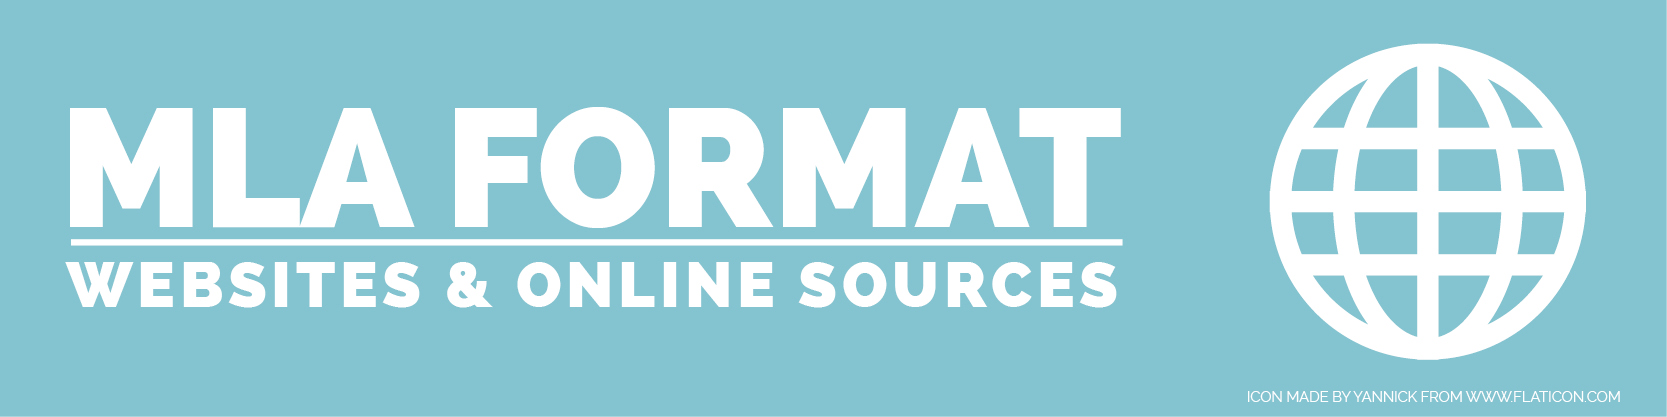 MLA FORMAT WEBSITES AND ONLINE SOURCES \u2013 The Visual Communication